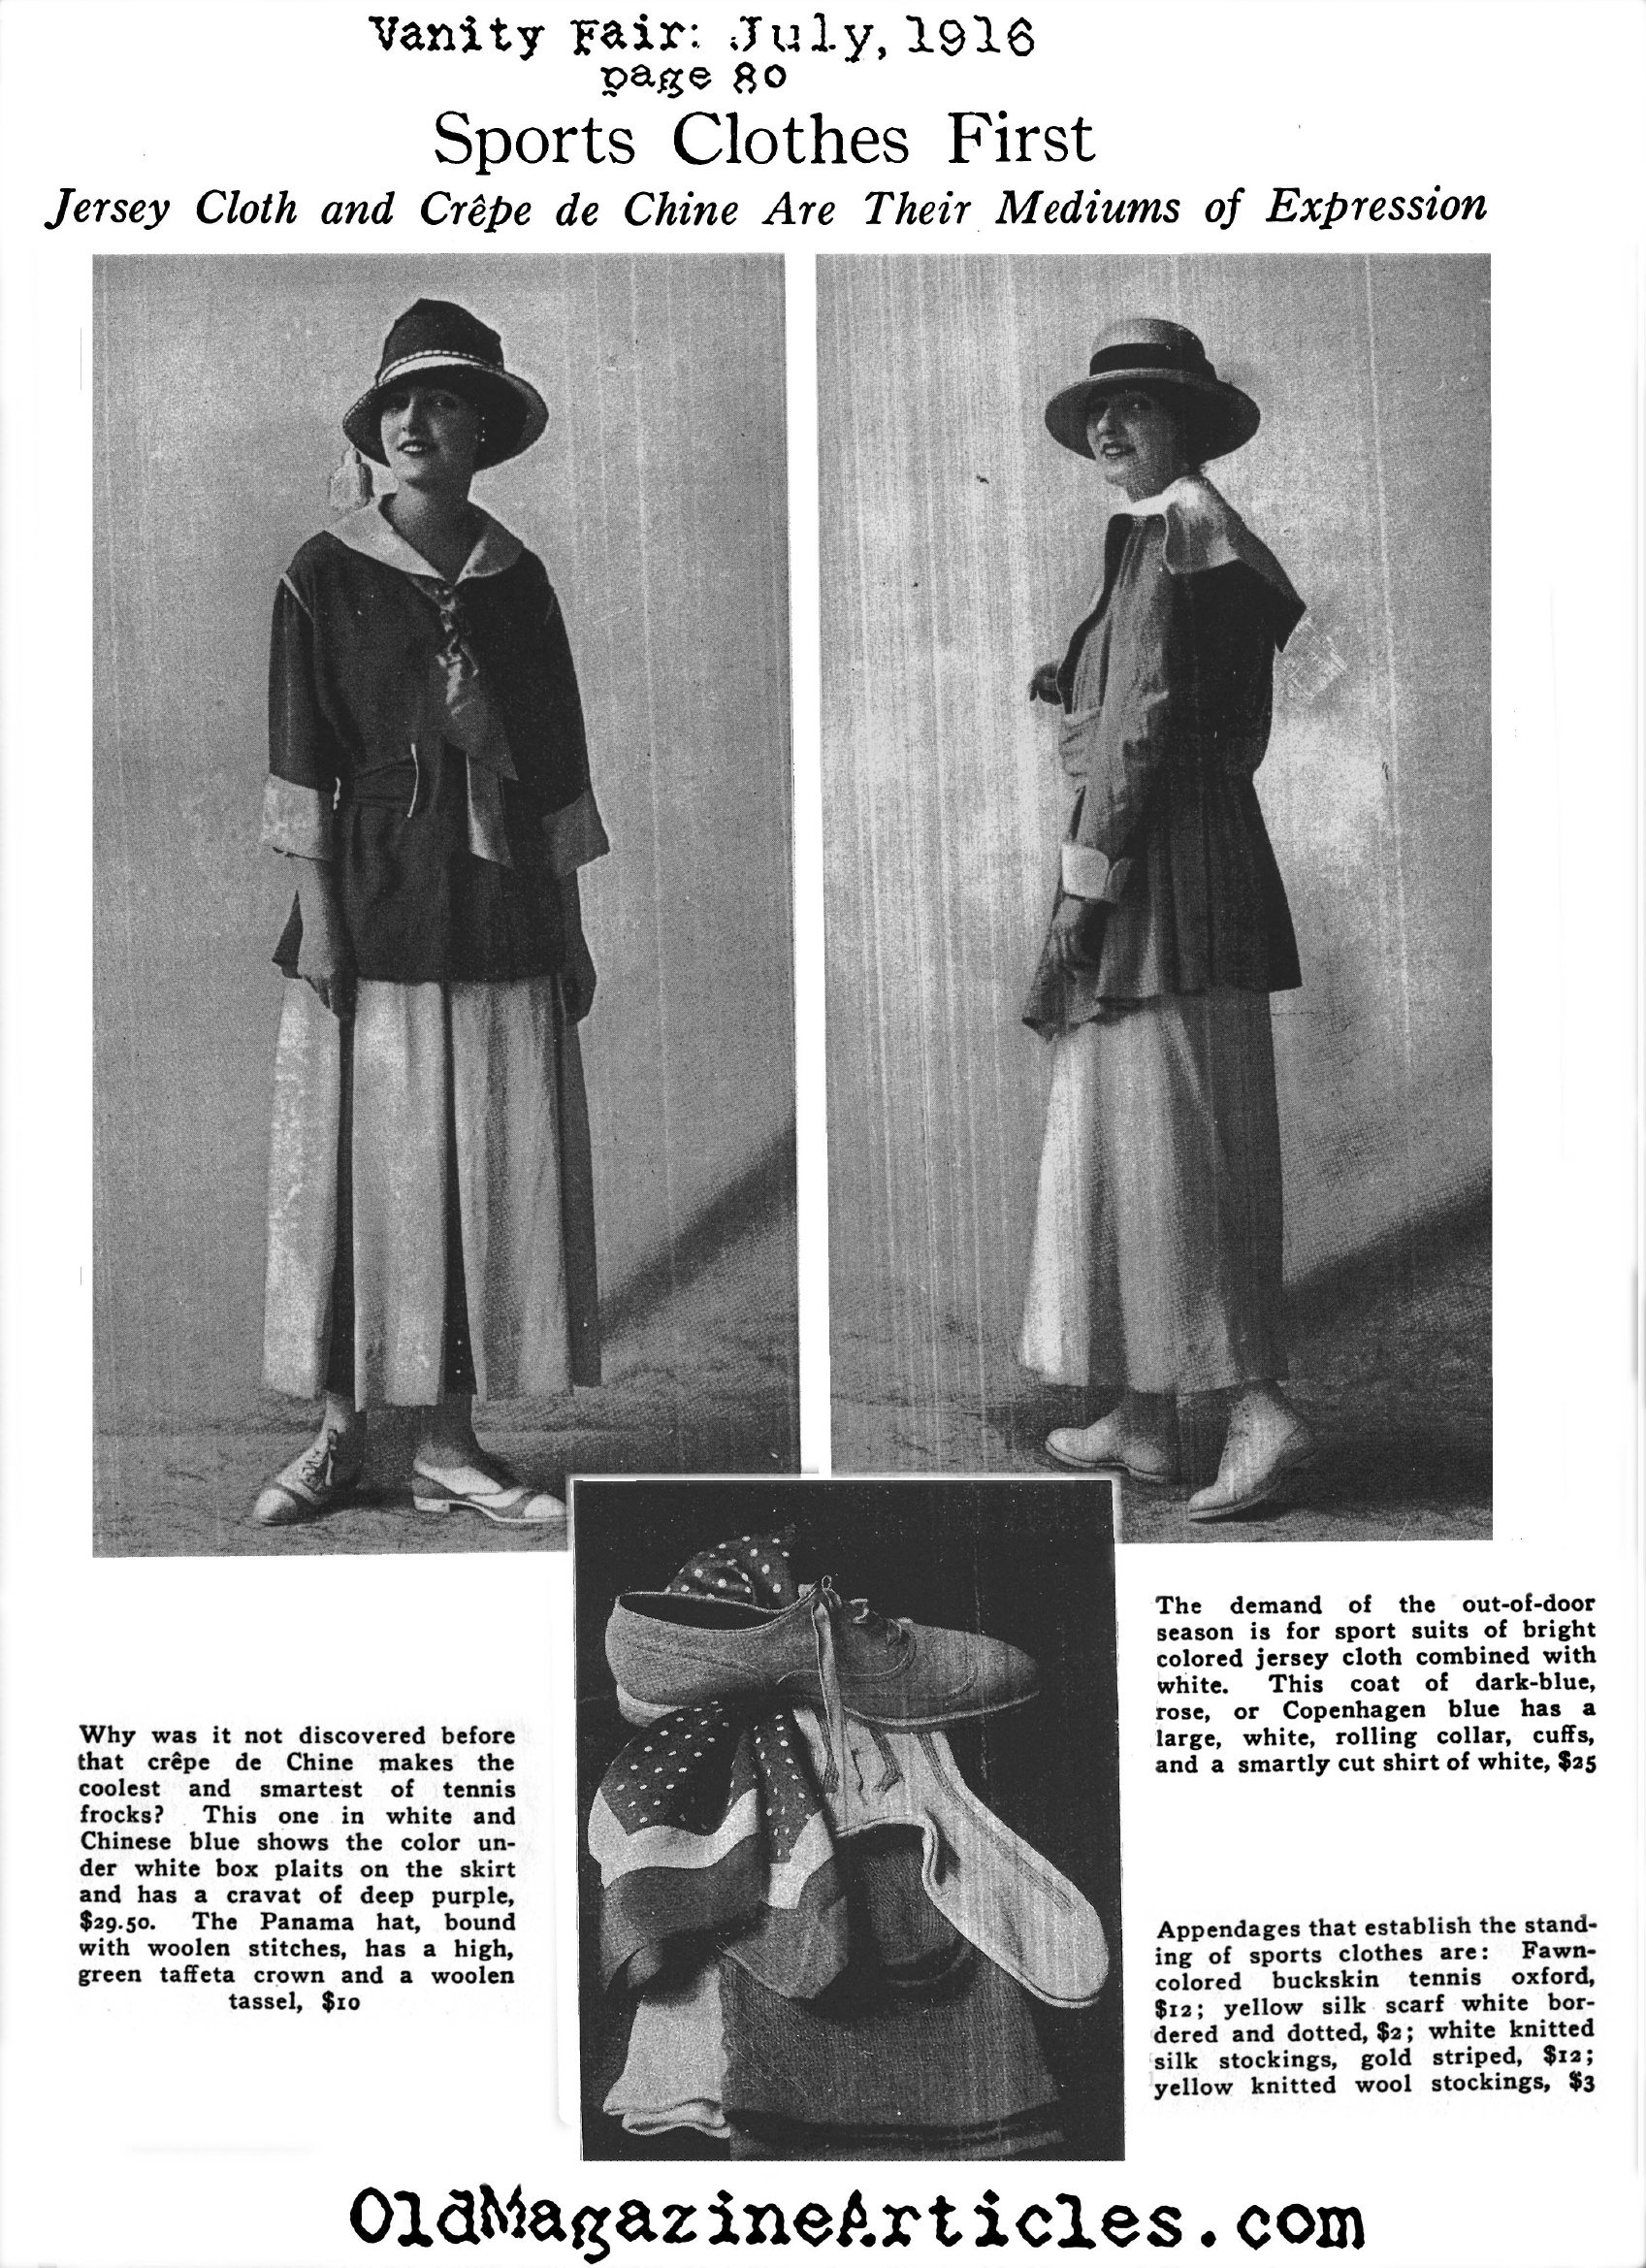 Crepe de Chine Makes it's Appearance on the Tennis Court (Vanity Fair Magazine, 1916)